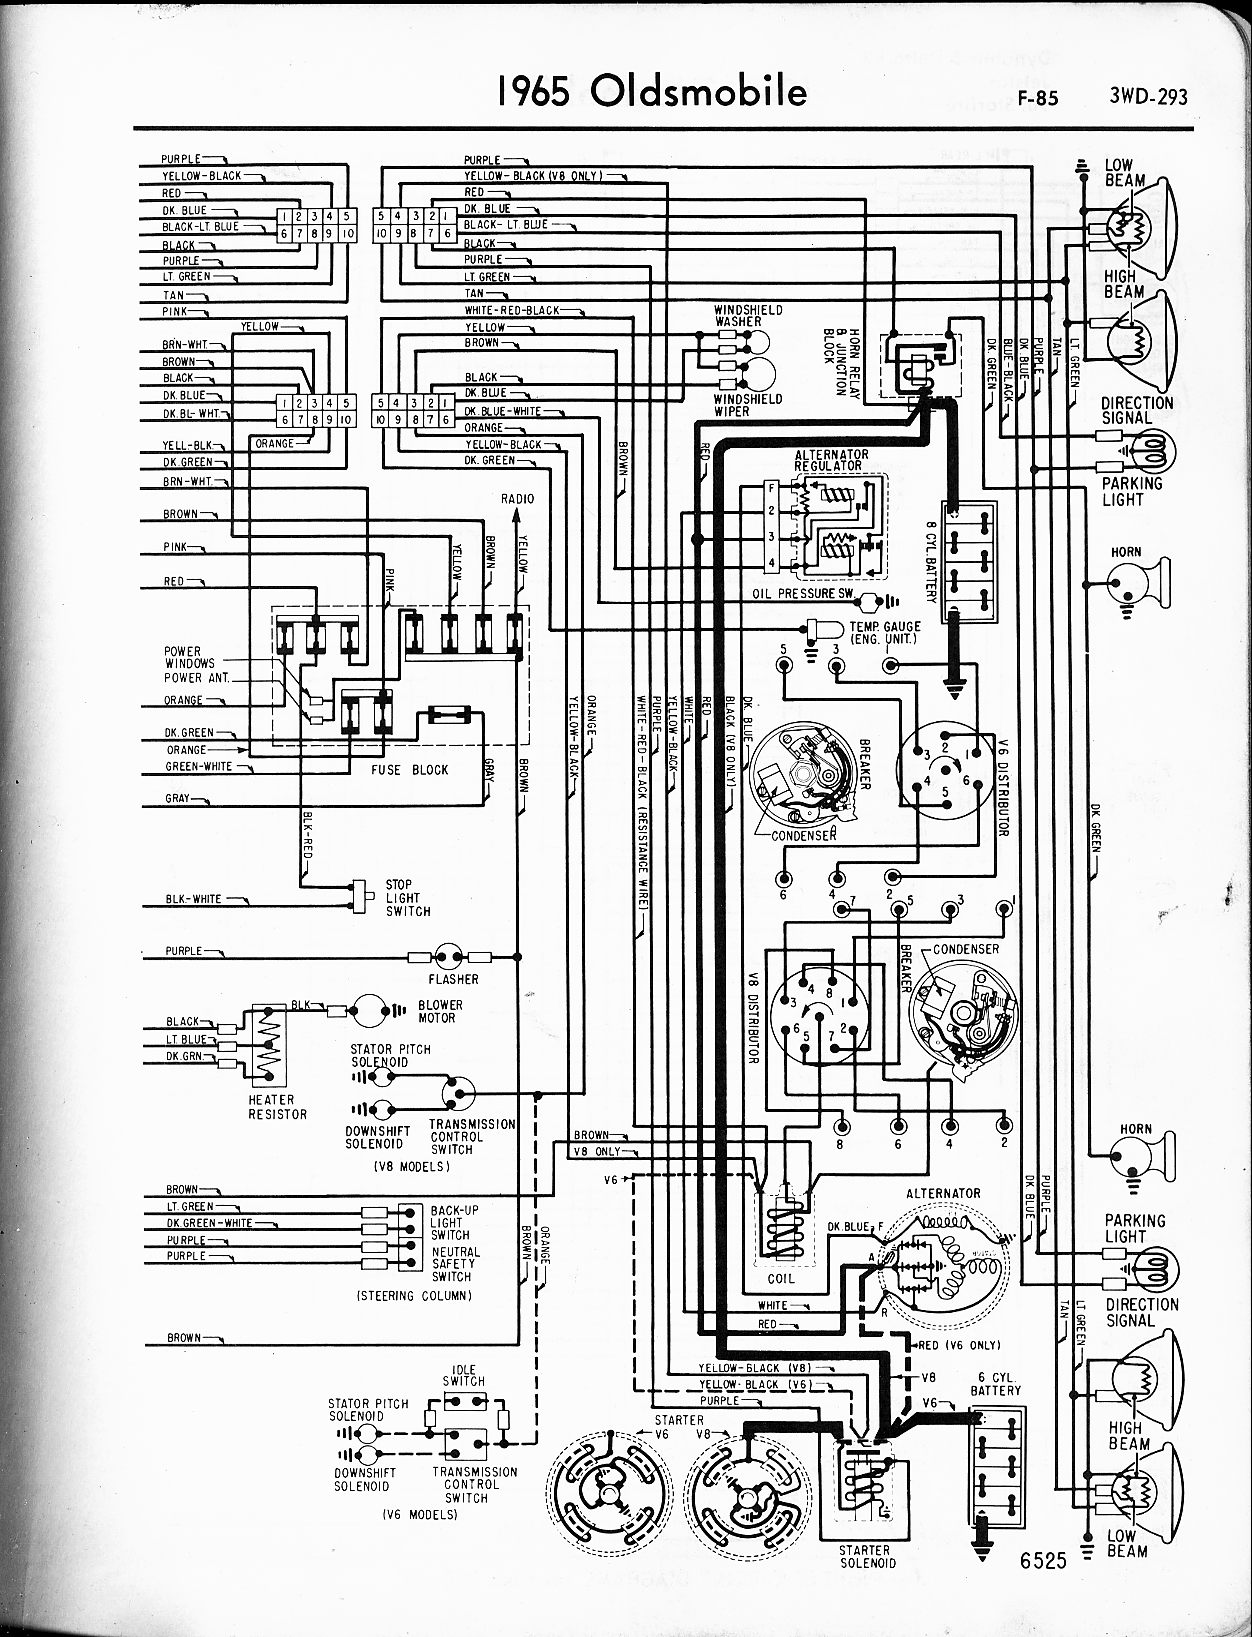 1967 El Camino Window Diagram Wiring Schematic Library 1978 Chevrolet